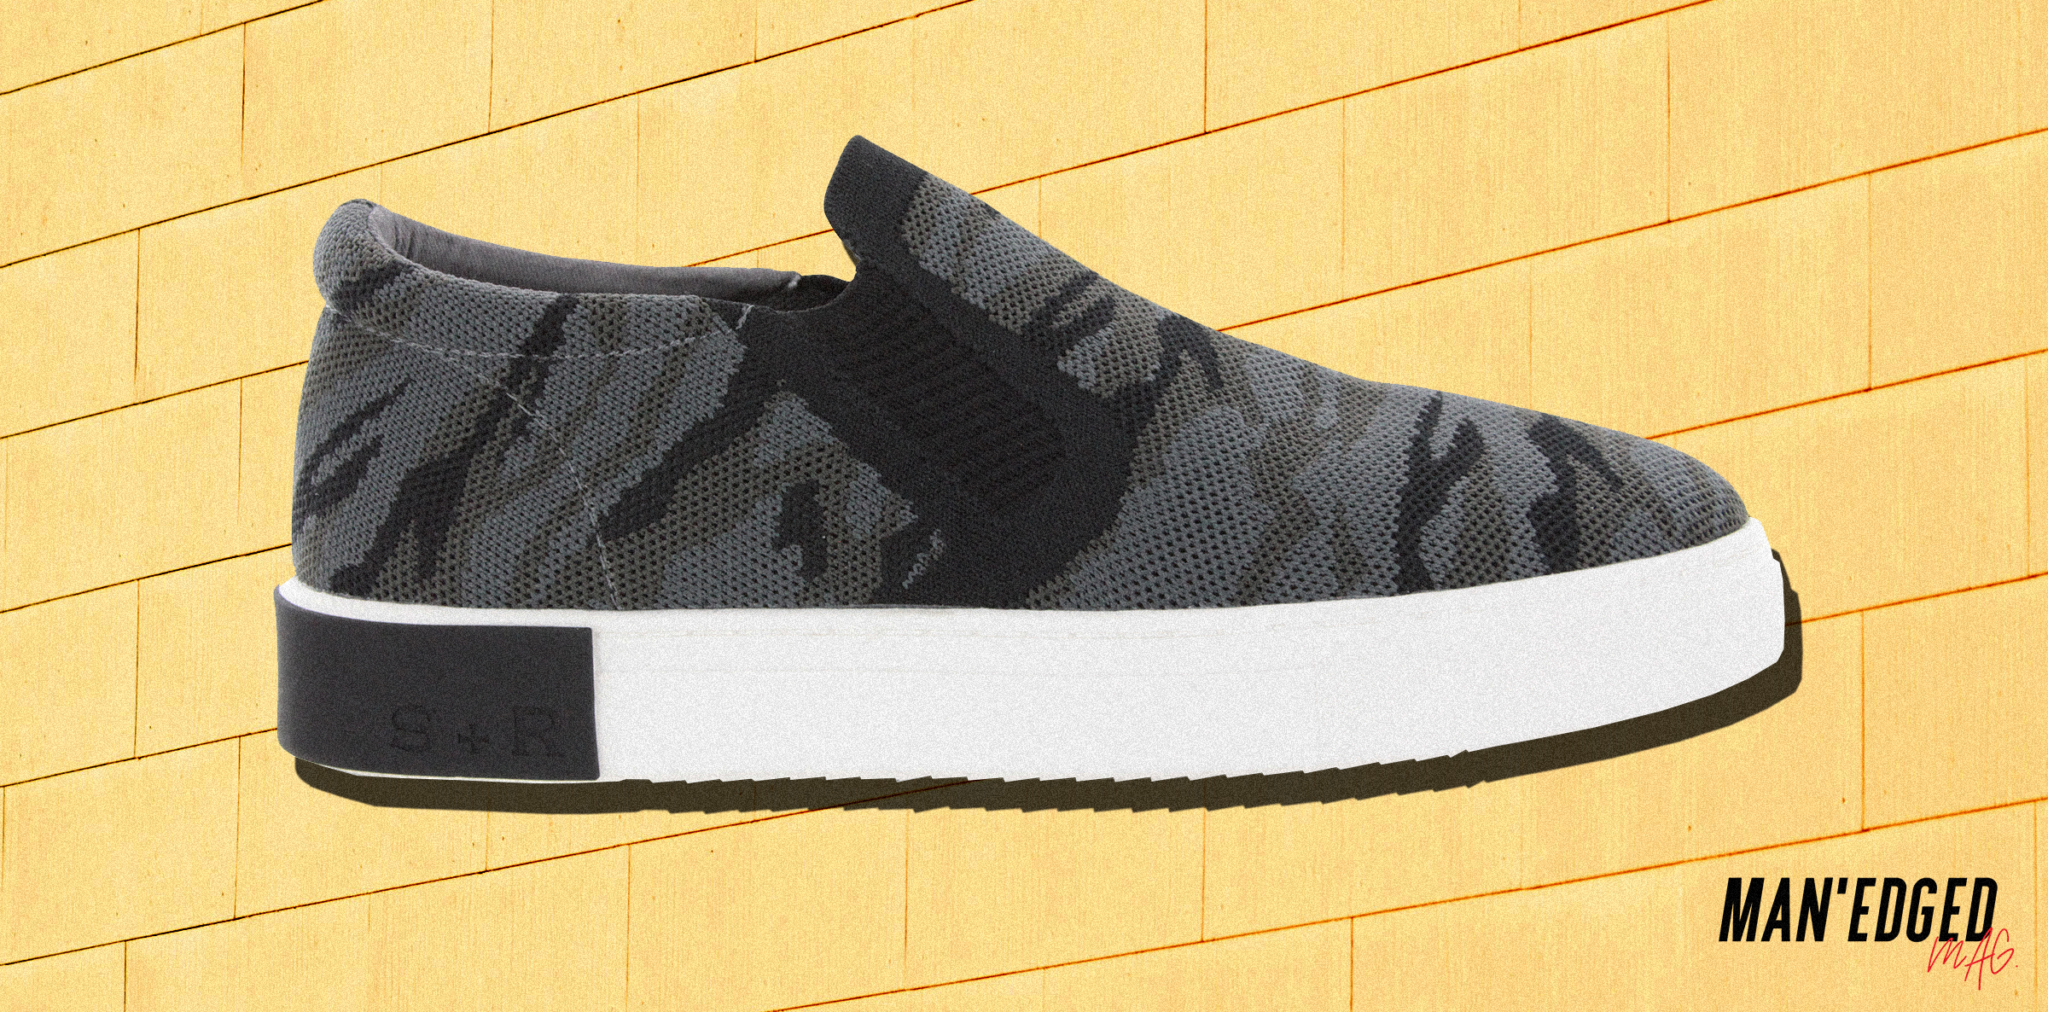 camo strass and ramm men's slip on sneaker